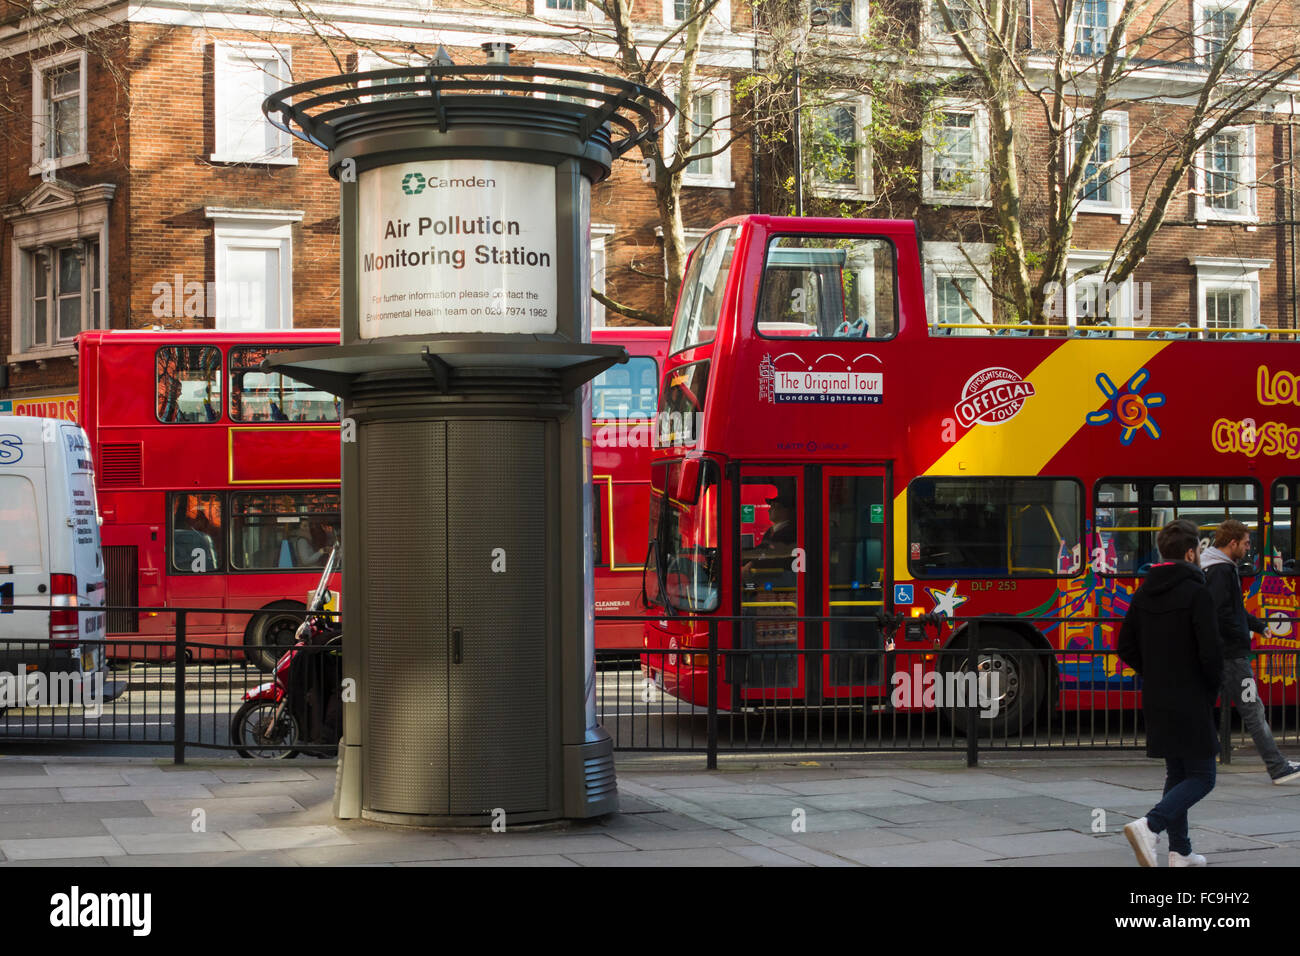 Air Pollution Monitoring station, Shaftesbury Avenue, London. UK - Stock Image